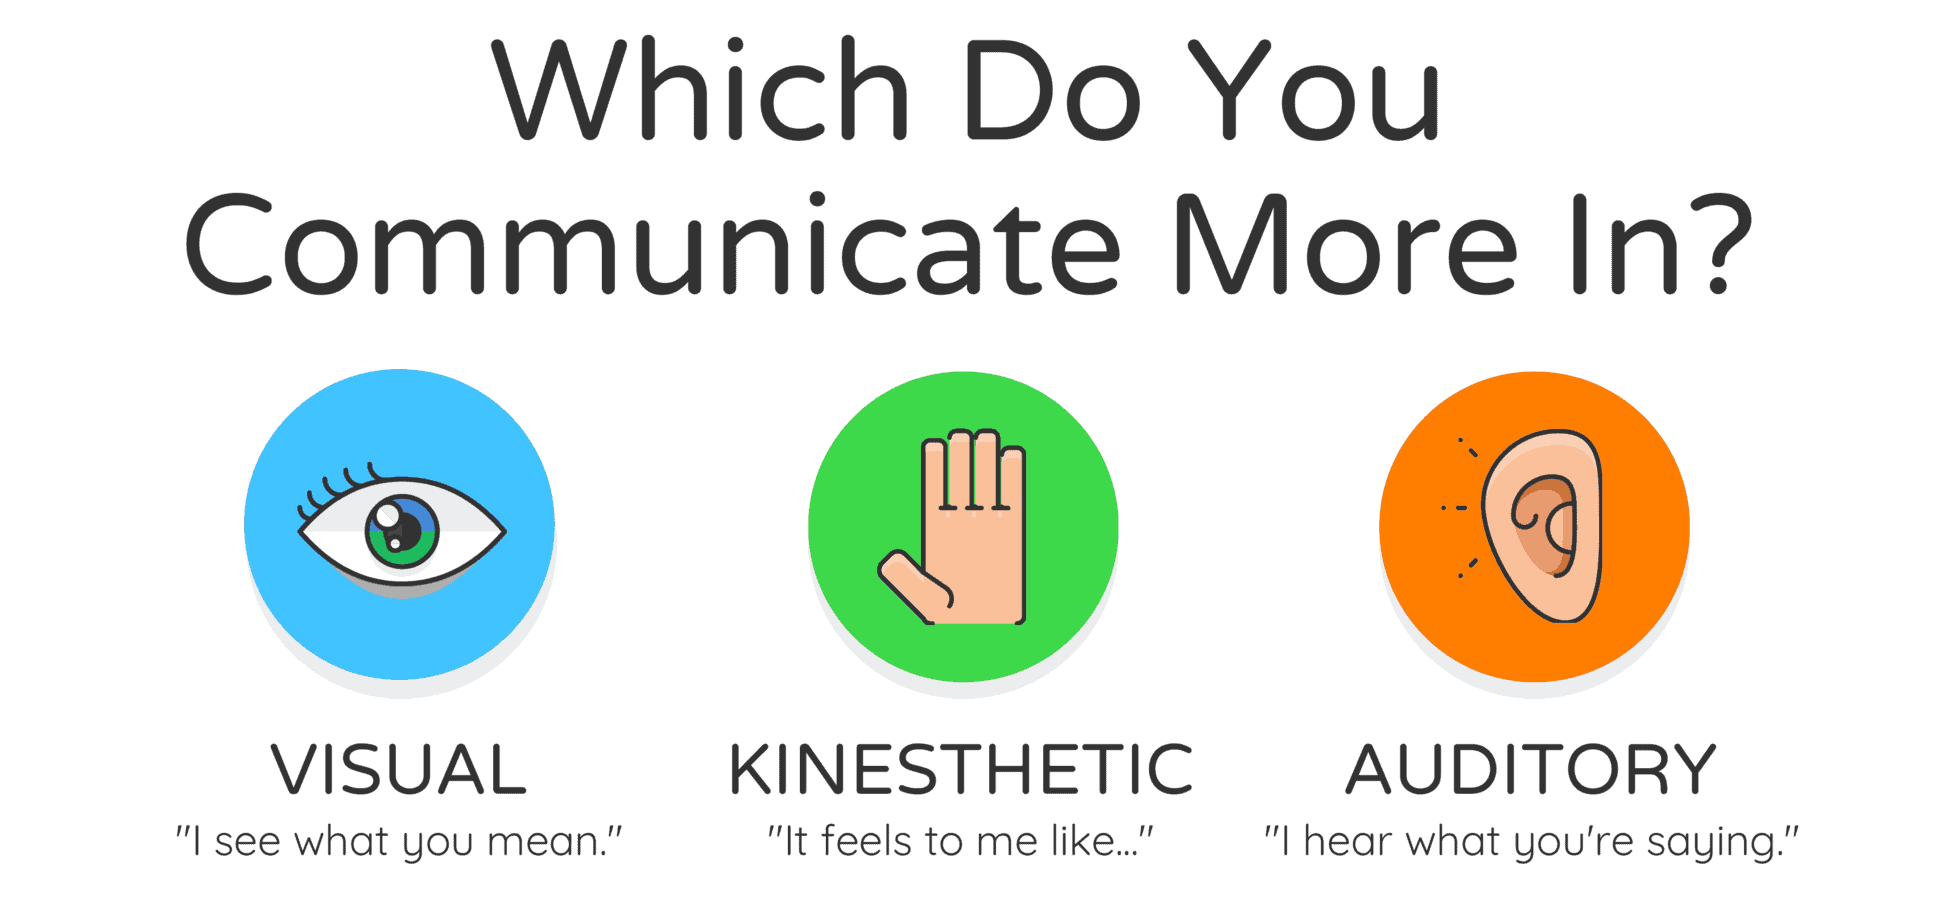 how to tell if someone is visual auditory or kinesthetic